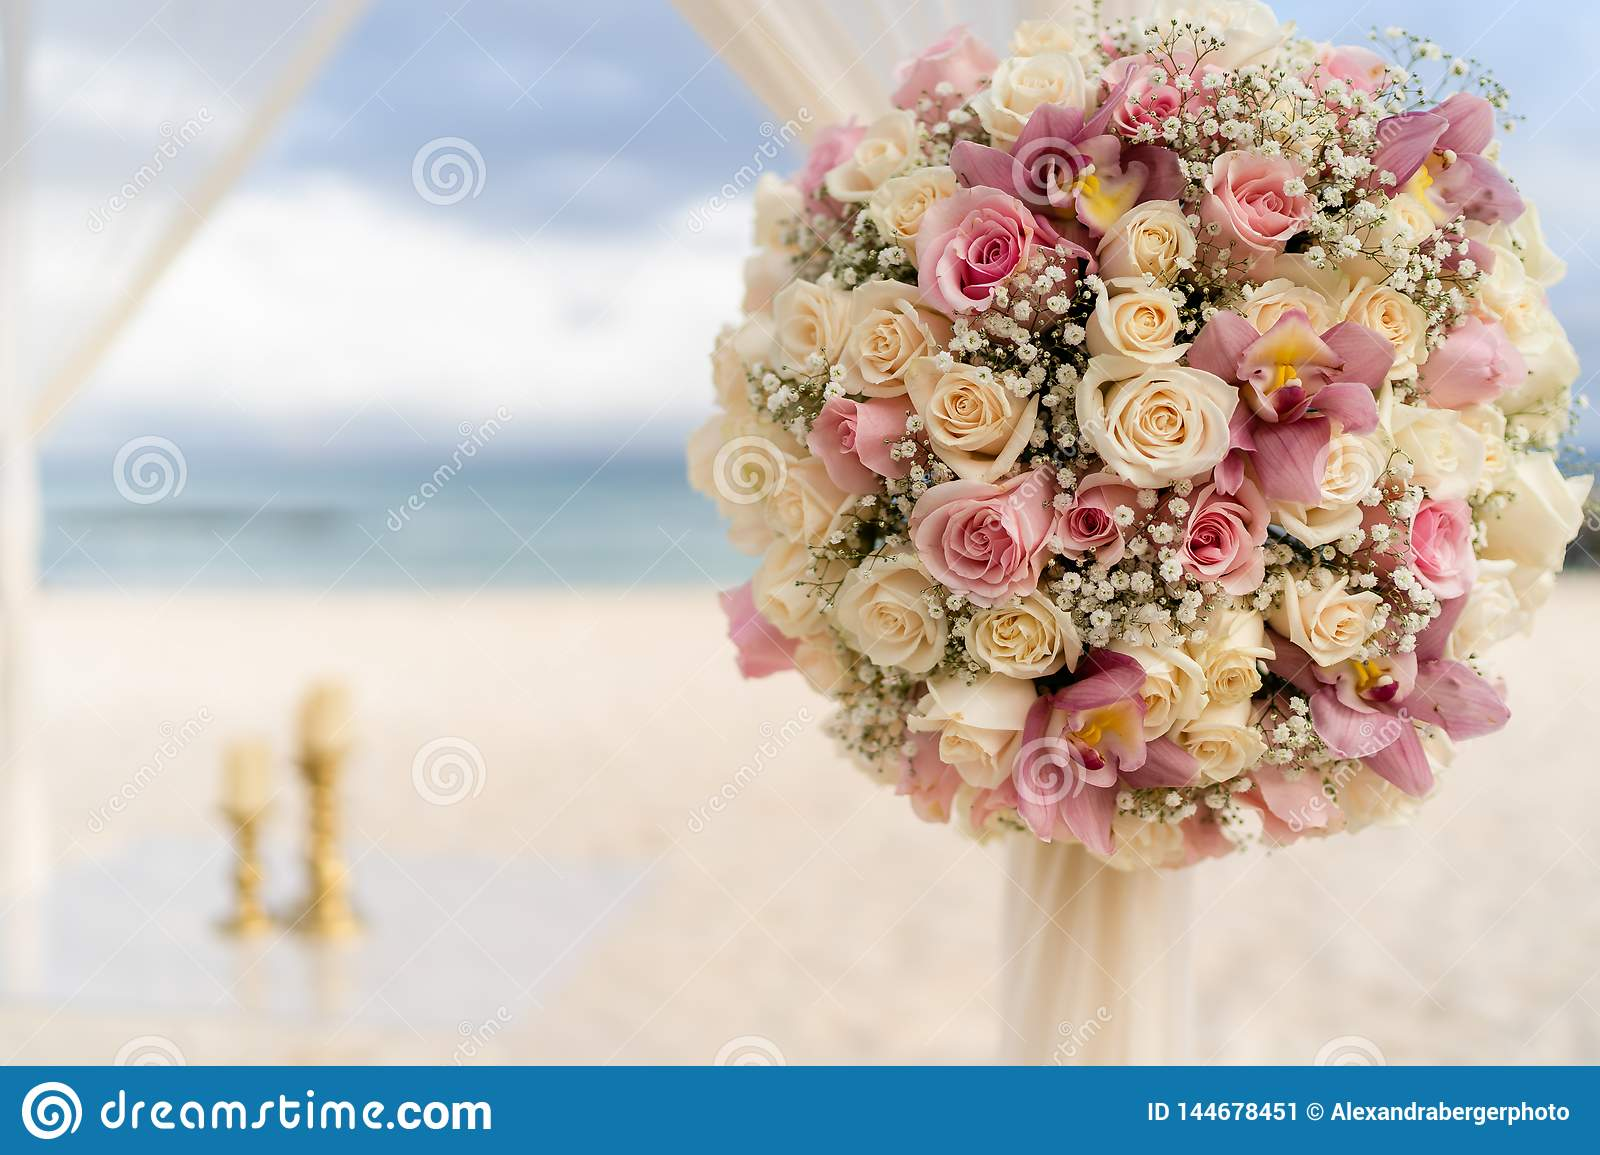 Romantic decoration with flowers of a beach wedding on the beach with sea in the background